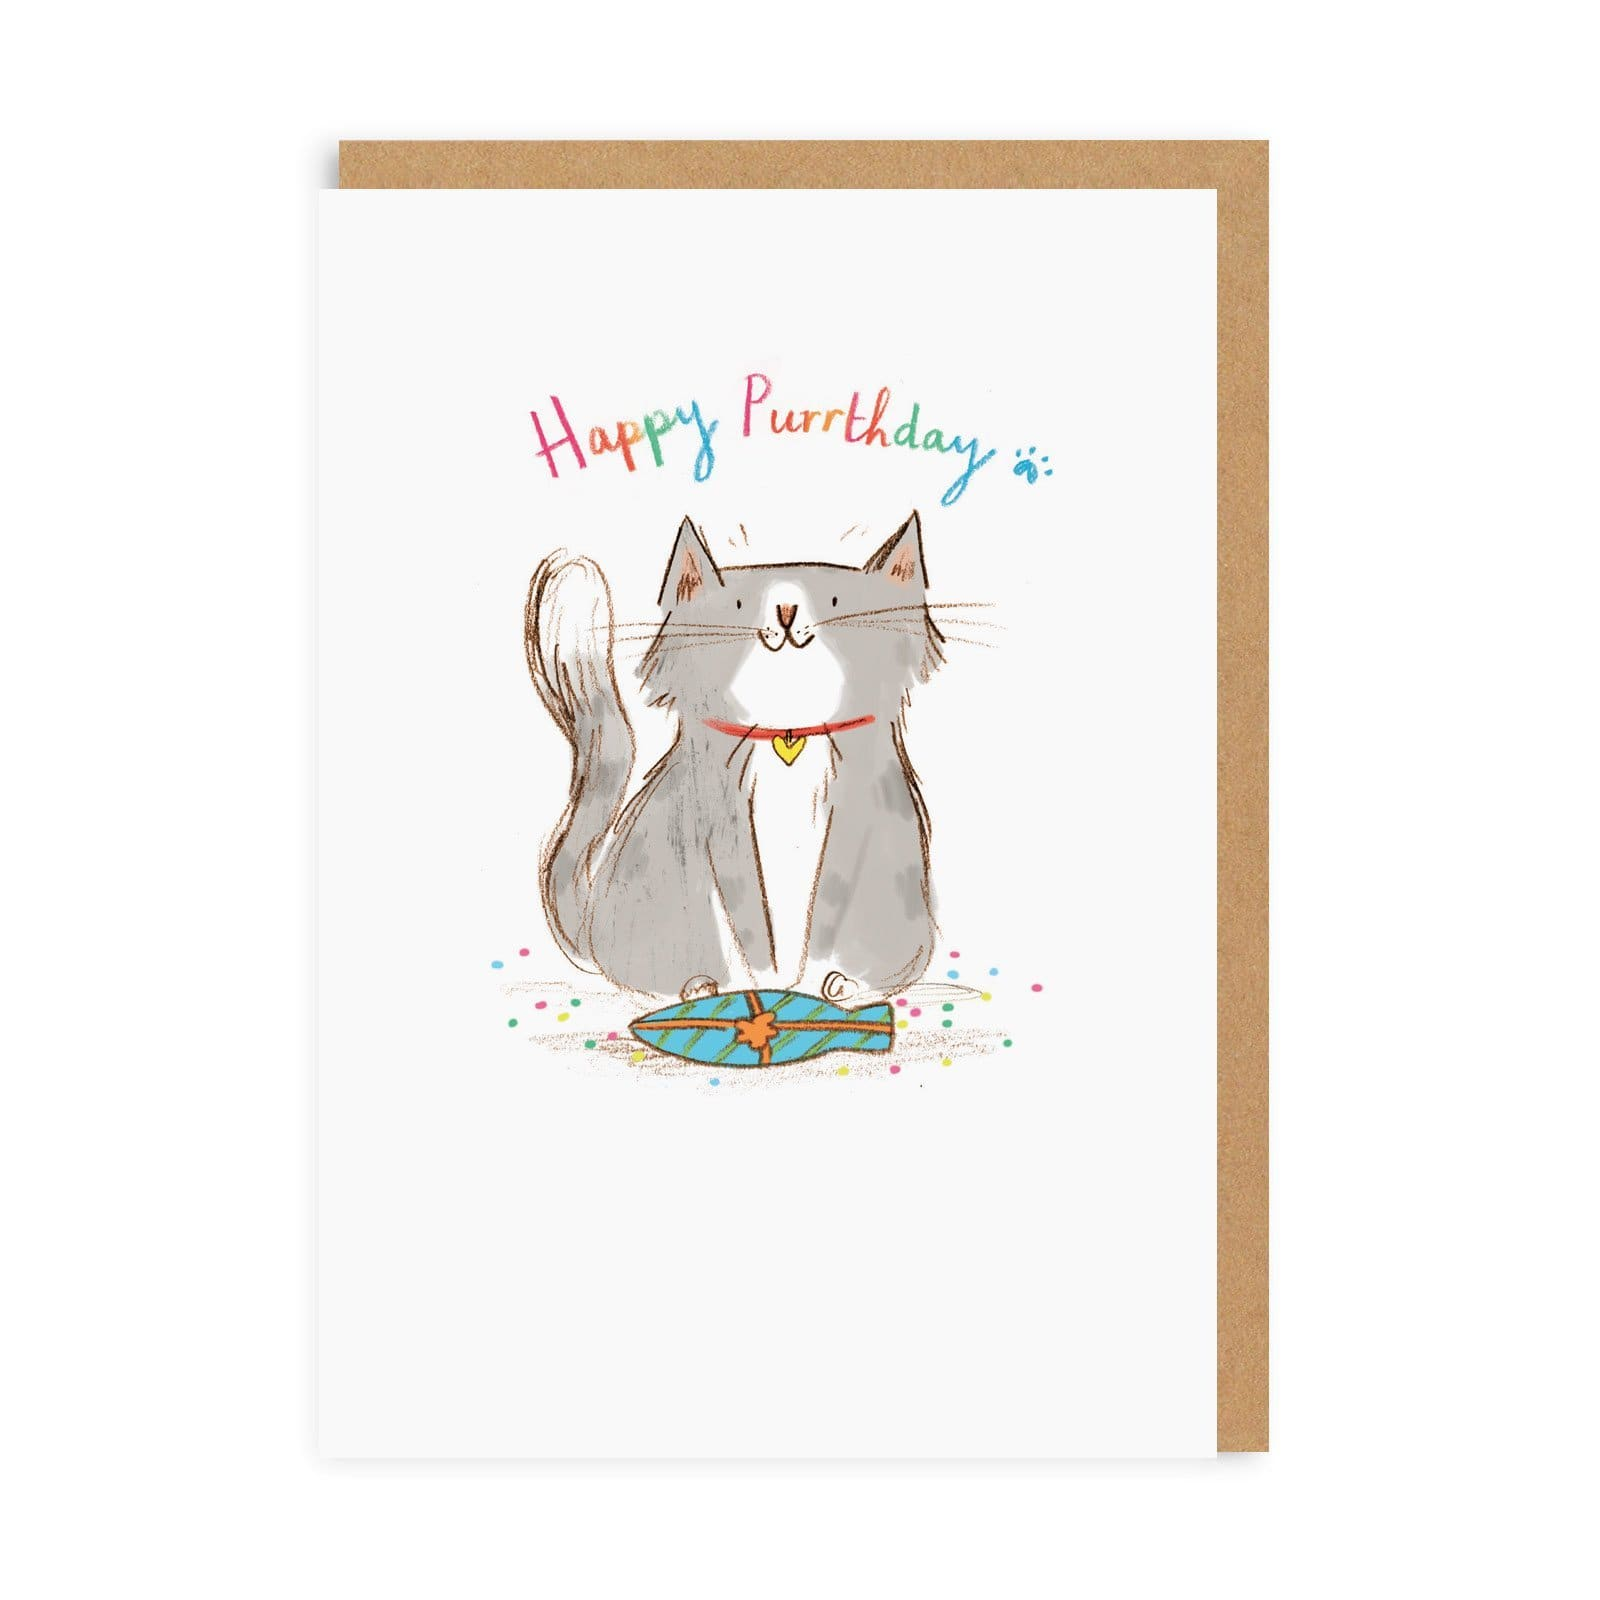 Happy Purthday Greeting Card